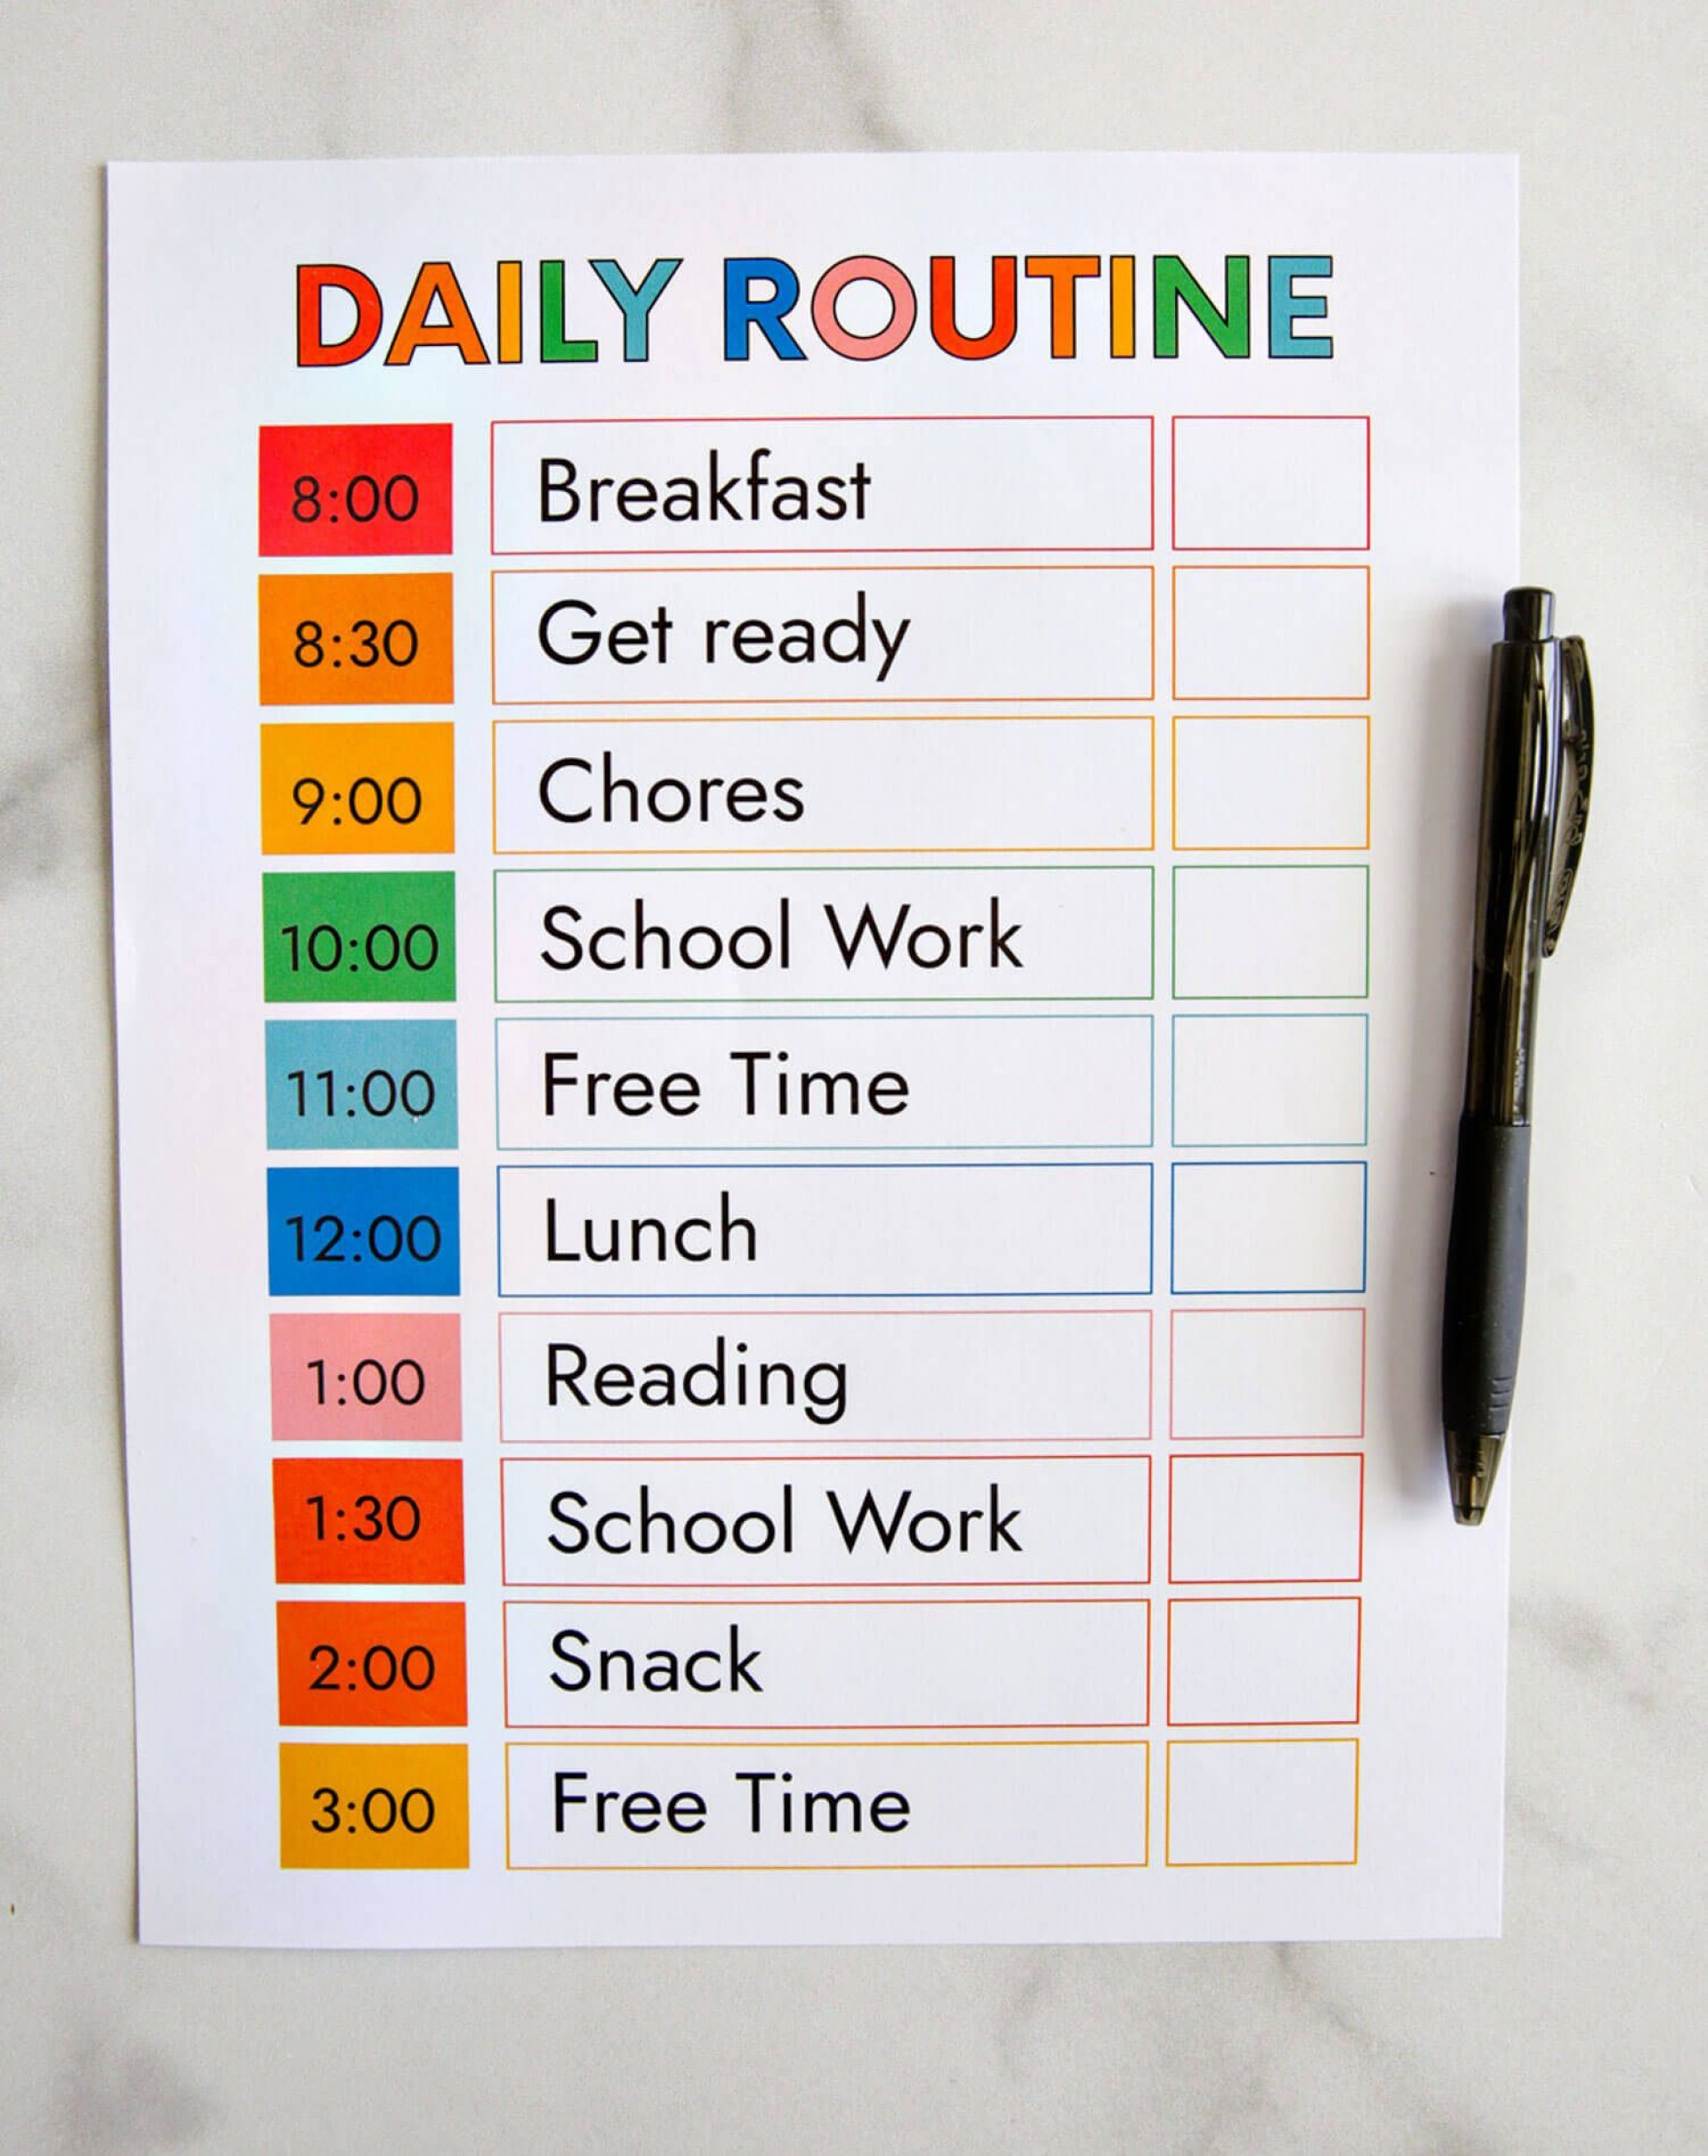 008 Shocking Daily Schedule Template Printable Image 1920